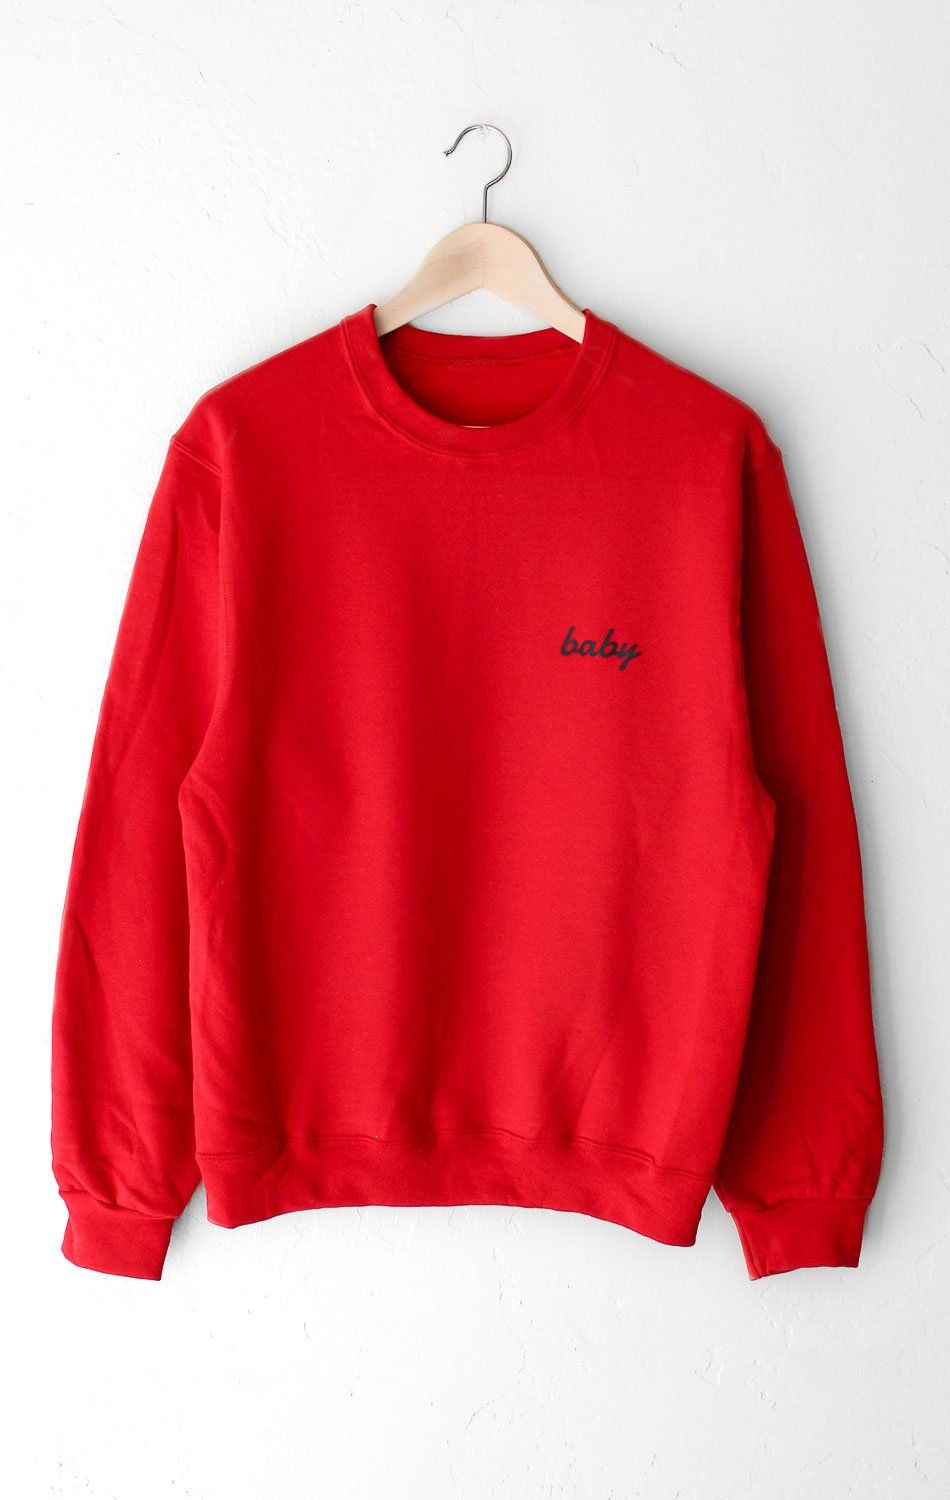 Description Size Guide Details Oversized Crewneck Sweatshirt In Red With Print Featuring Baby On Front Left Chest Brand Nyct Clothing Fabric Care 5 [ 1500 x 950 Pixel ]